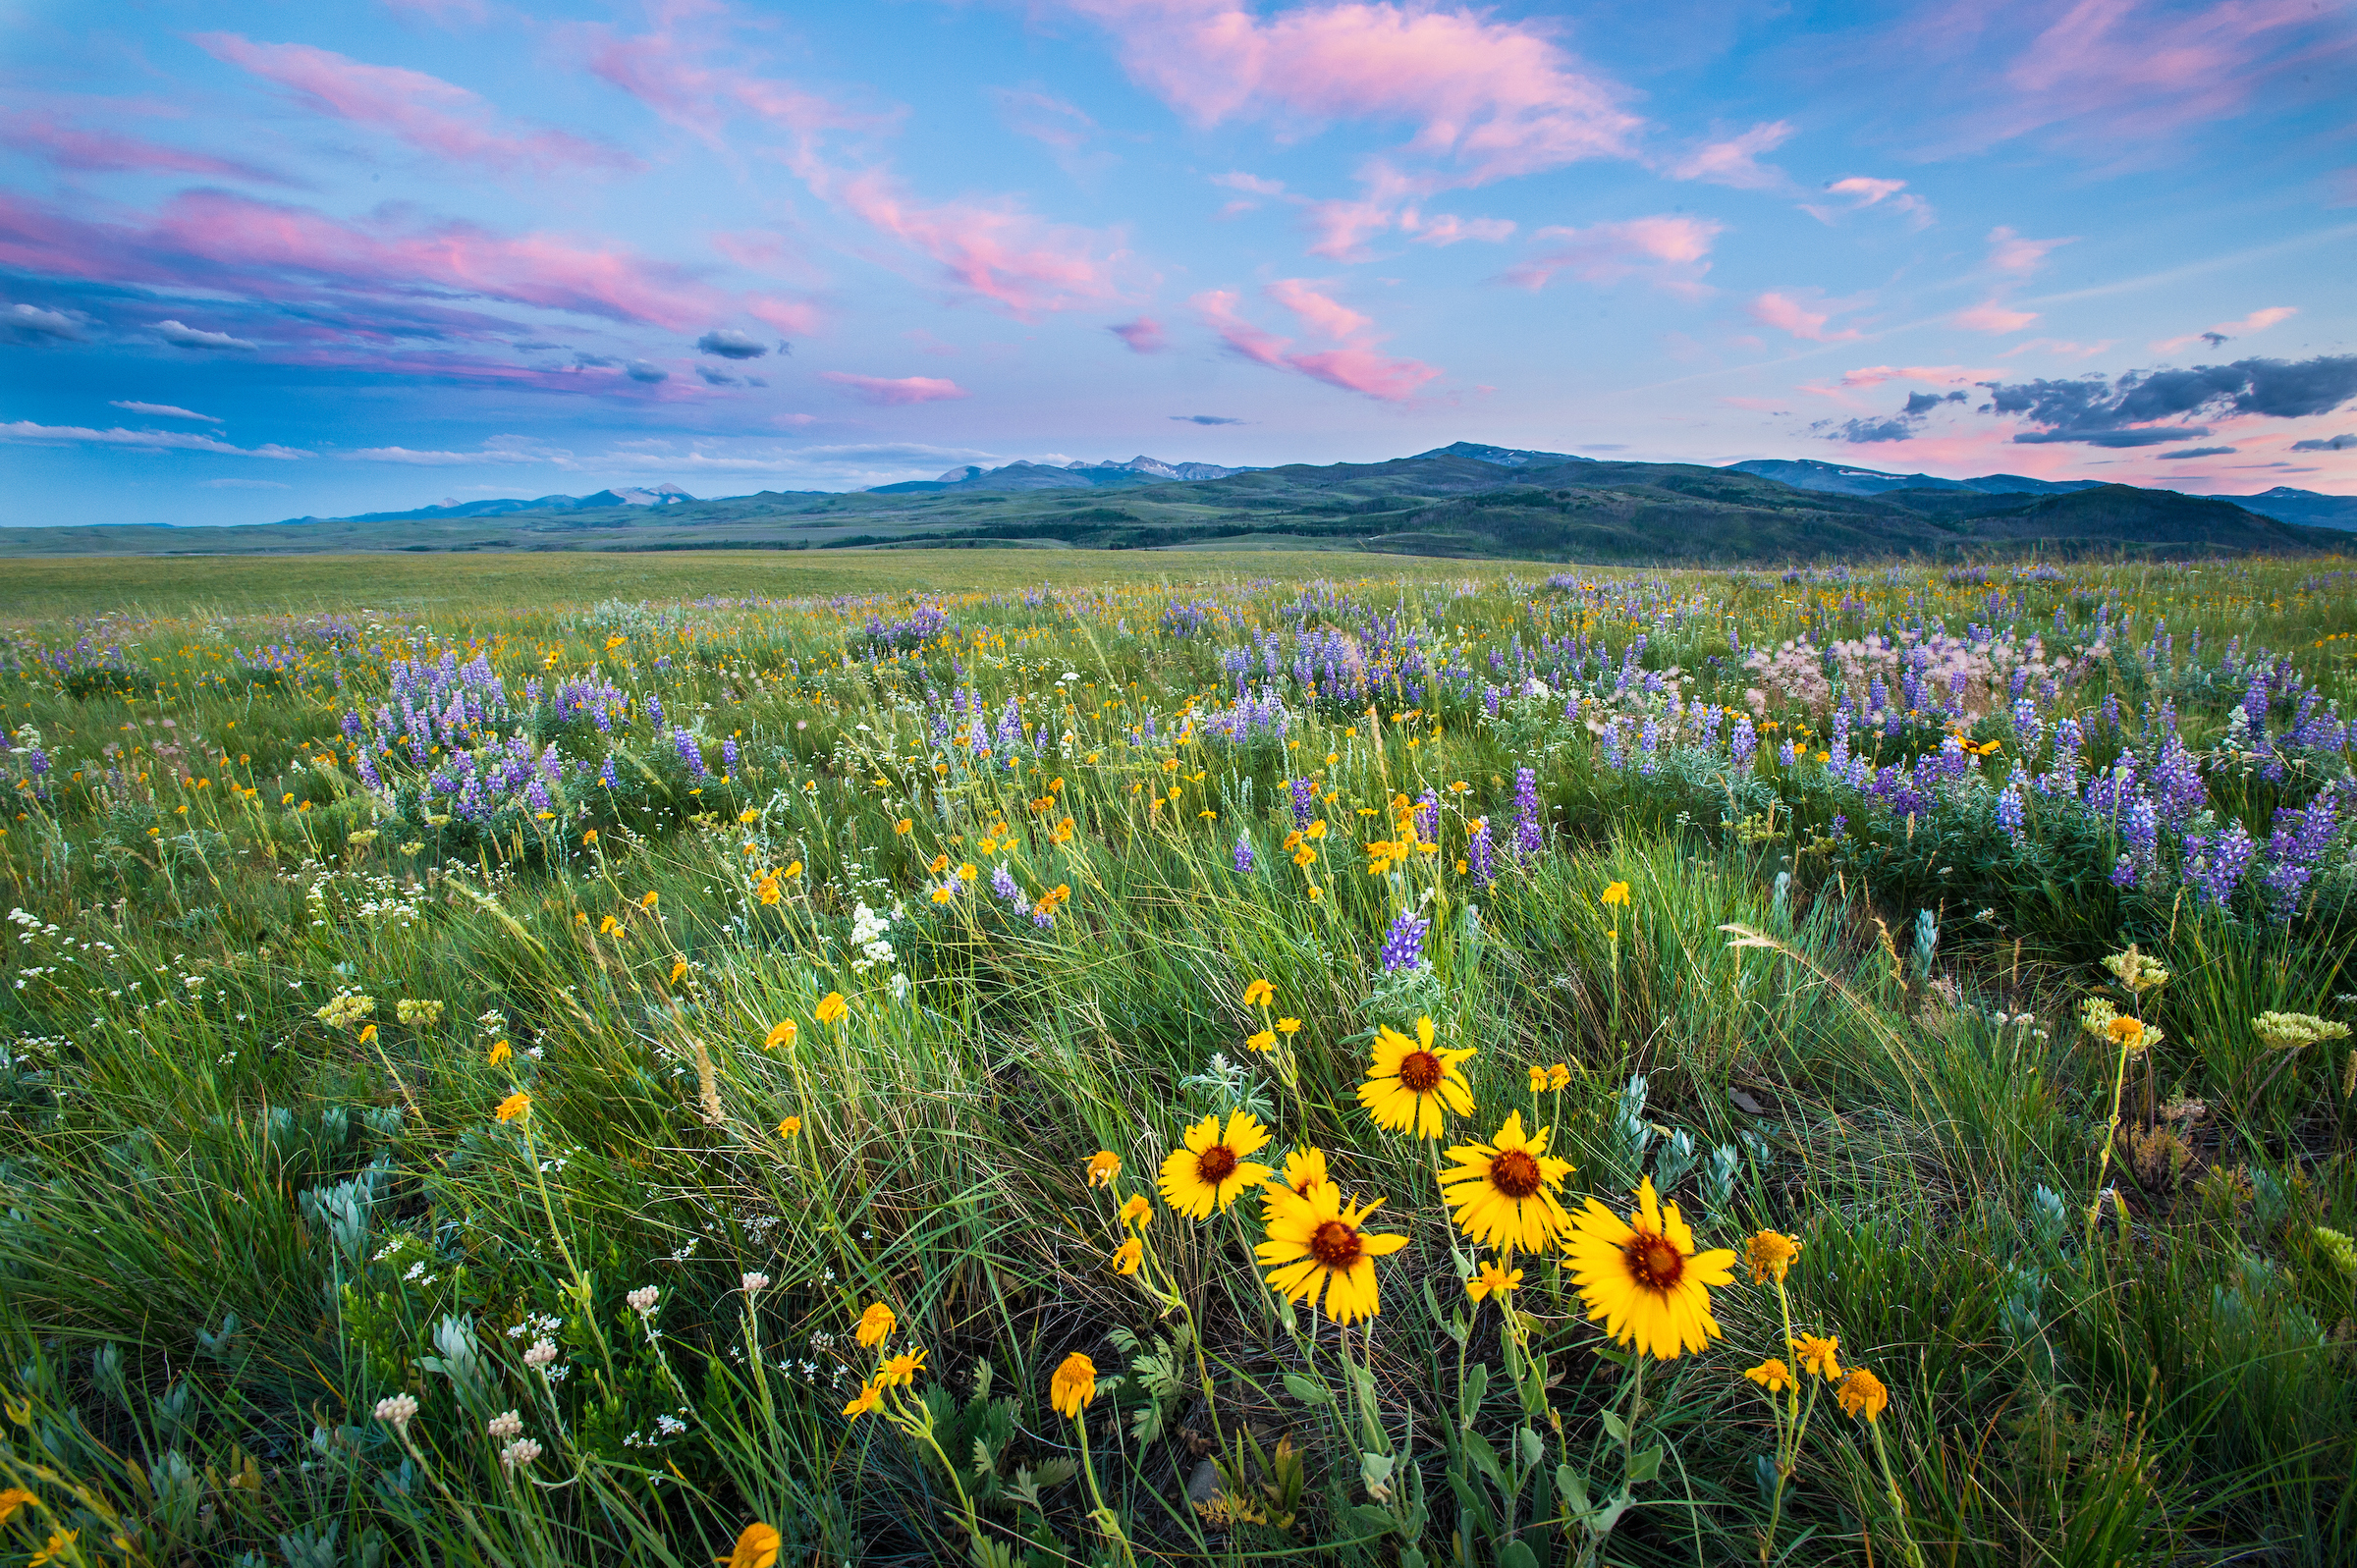 Lush, dense grass and prairie wildflowers spring to life along the Rocky Mountain Front.